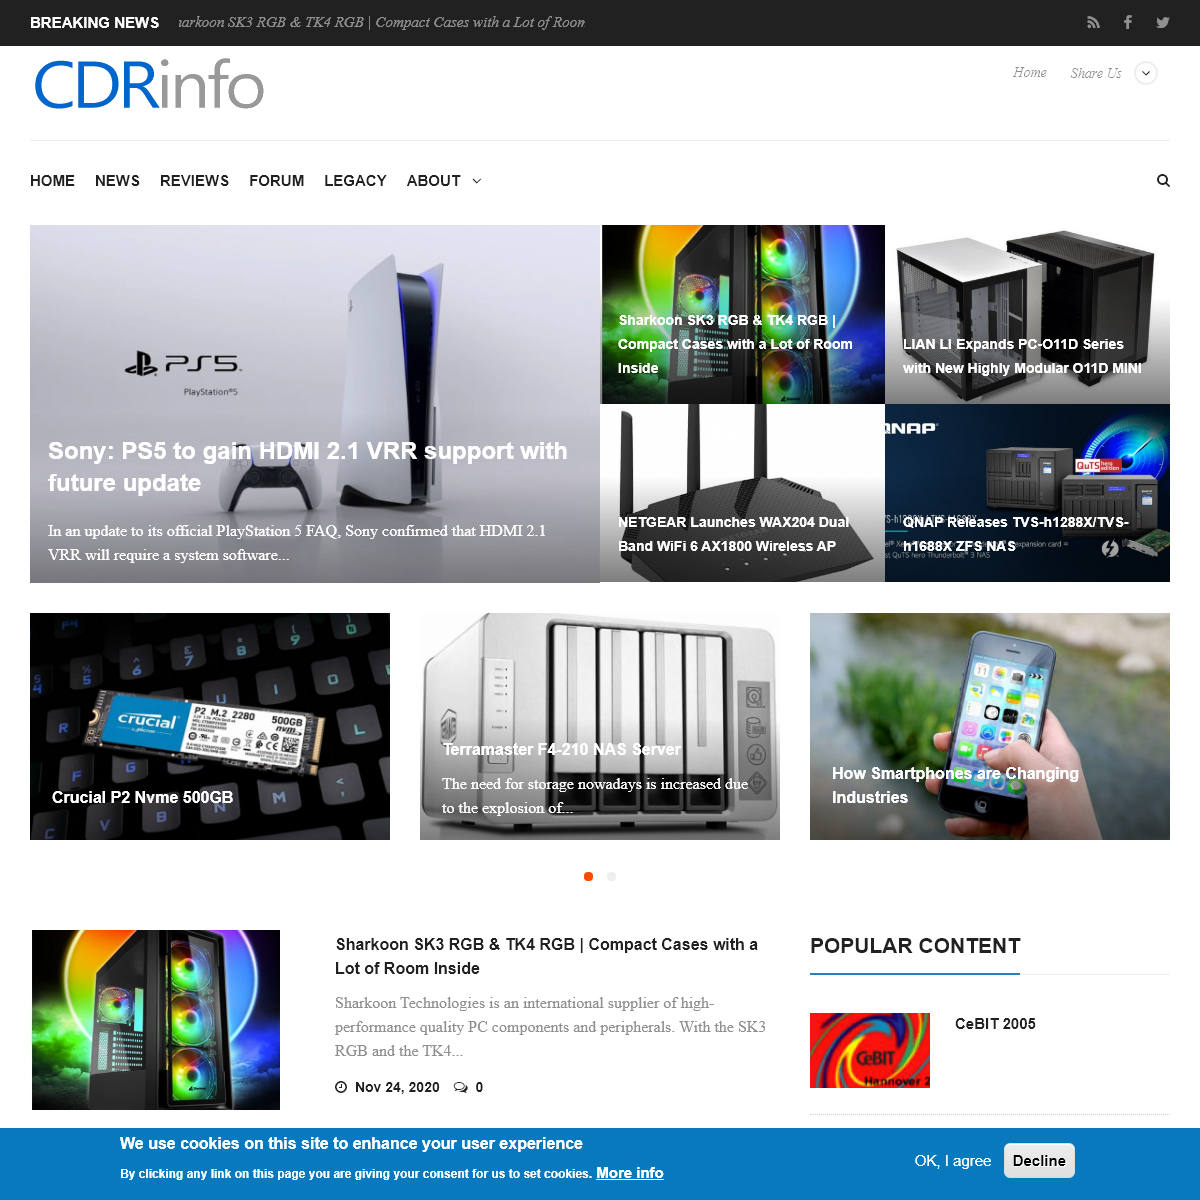 CdrInfo.com - The hardware authority